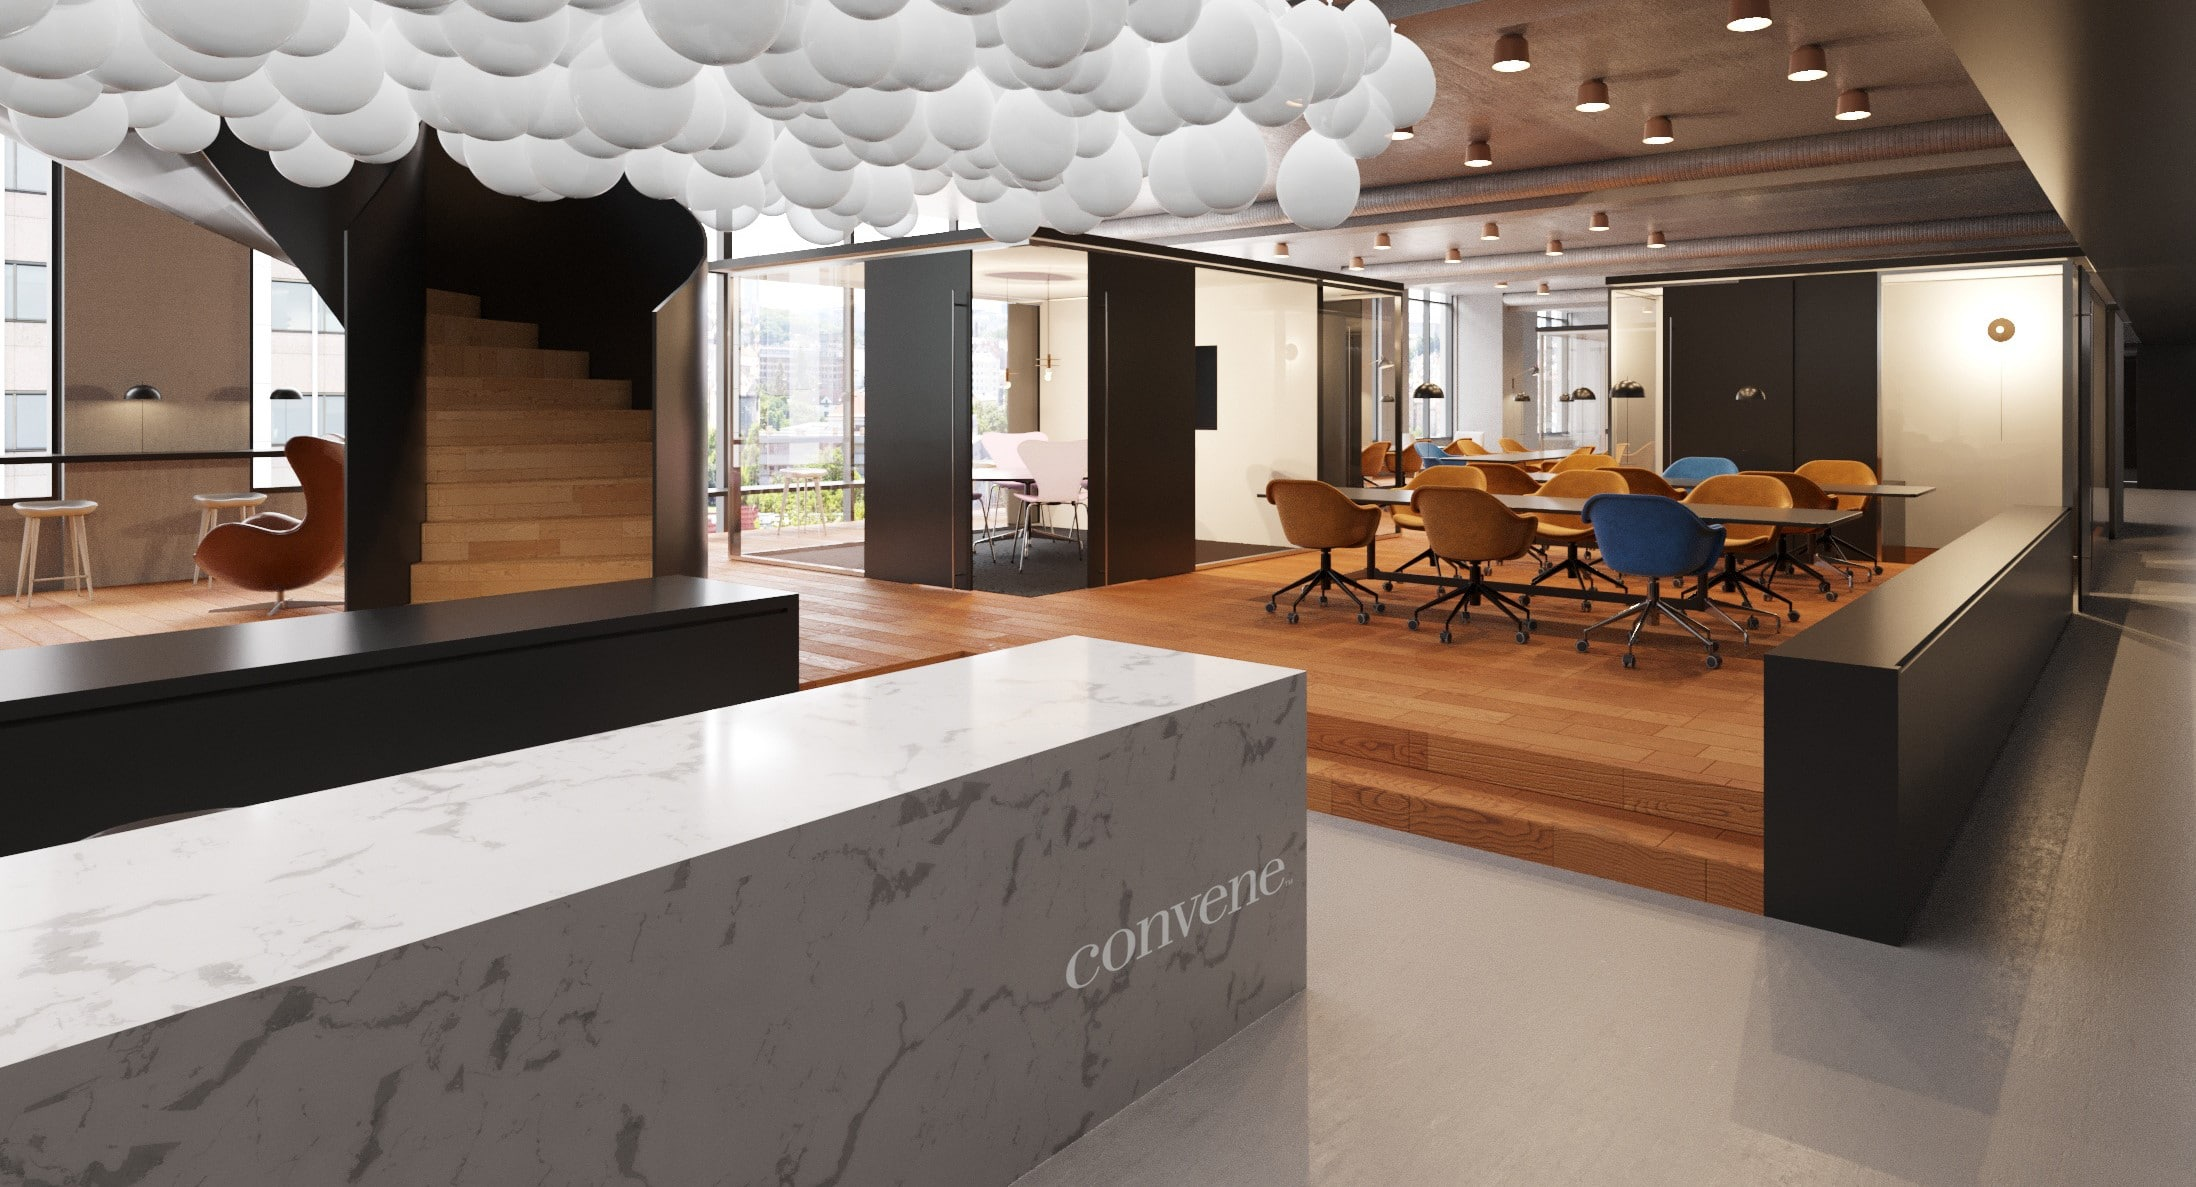 Convene's New Product Will Design and Build Flexible Work Spaces for Class A Office Landlords